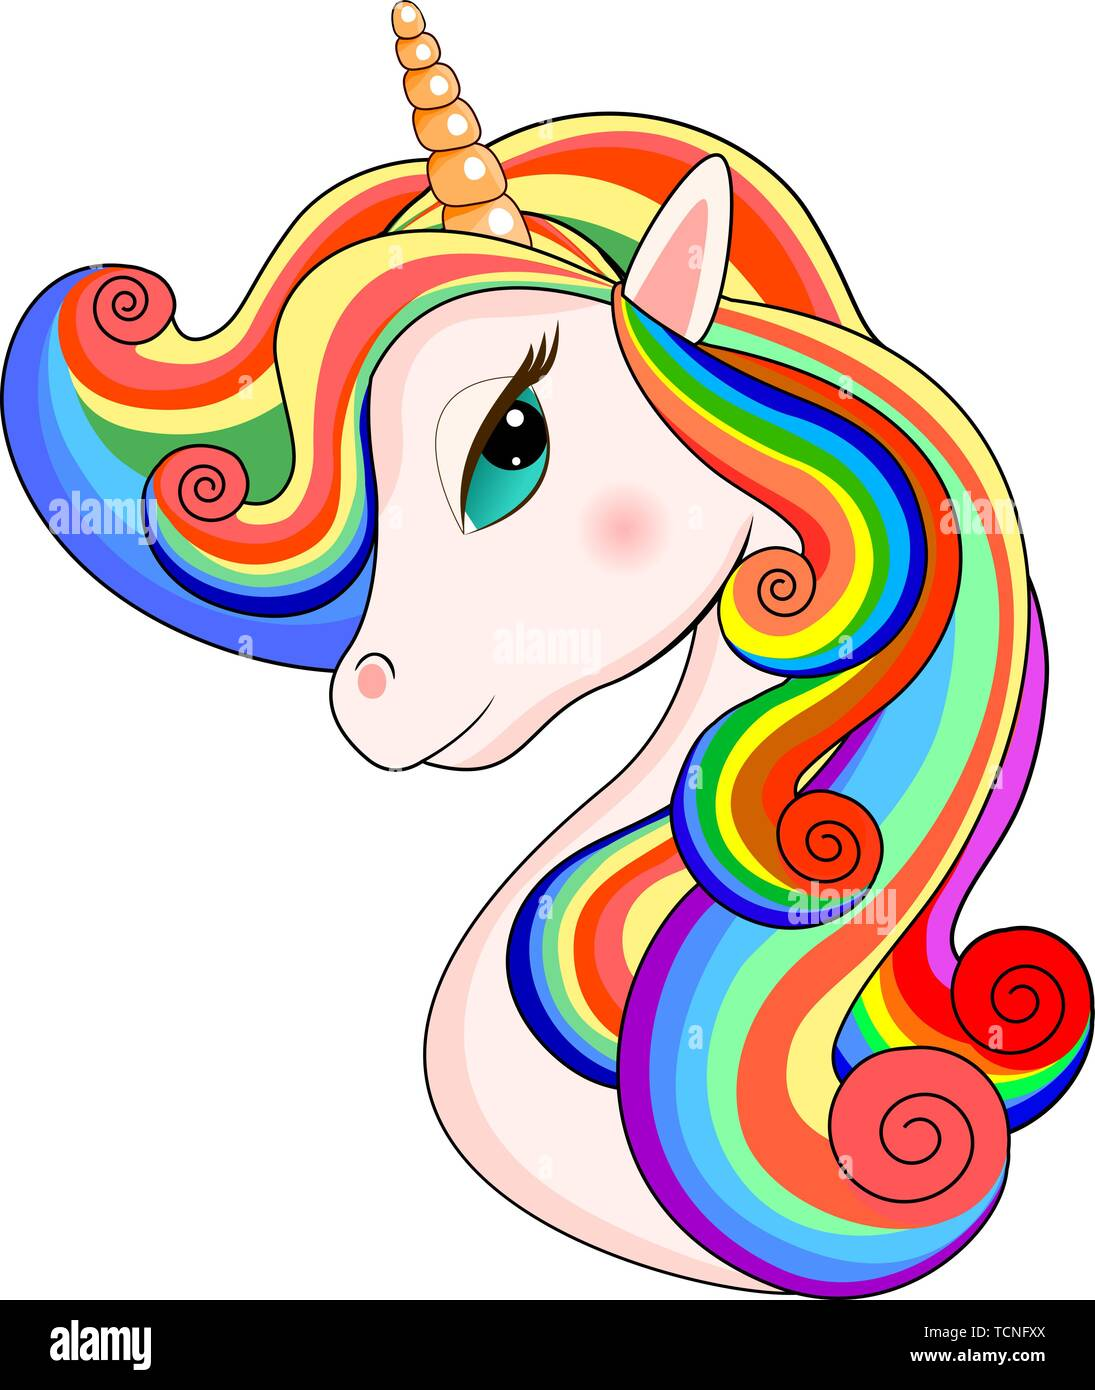 Head of a unicorn with a multi-colored mane on a white background. - Stock Vector